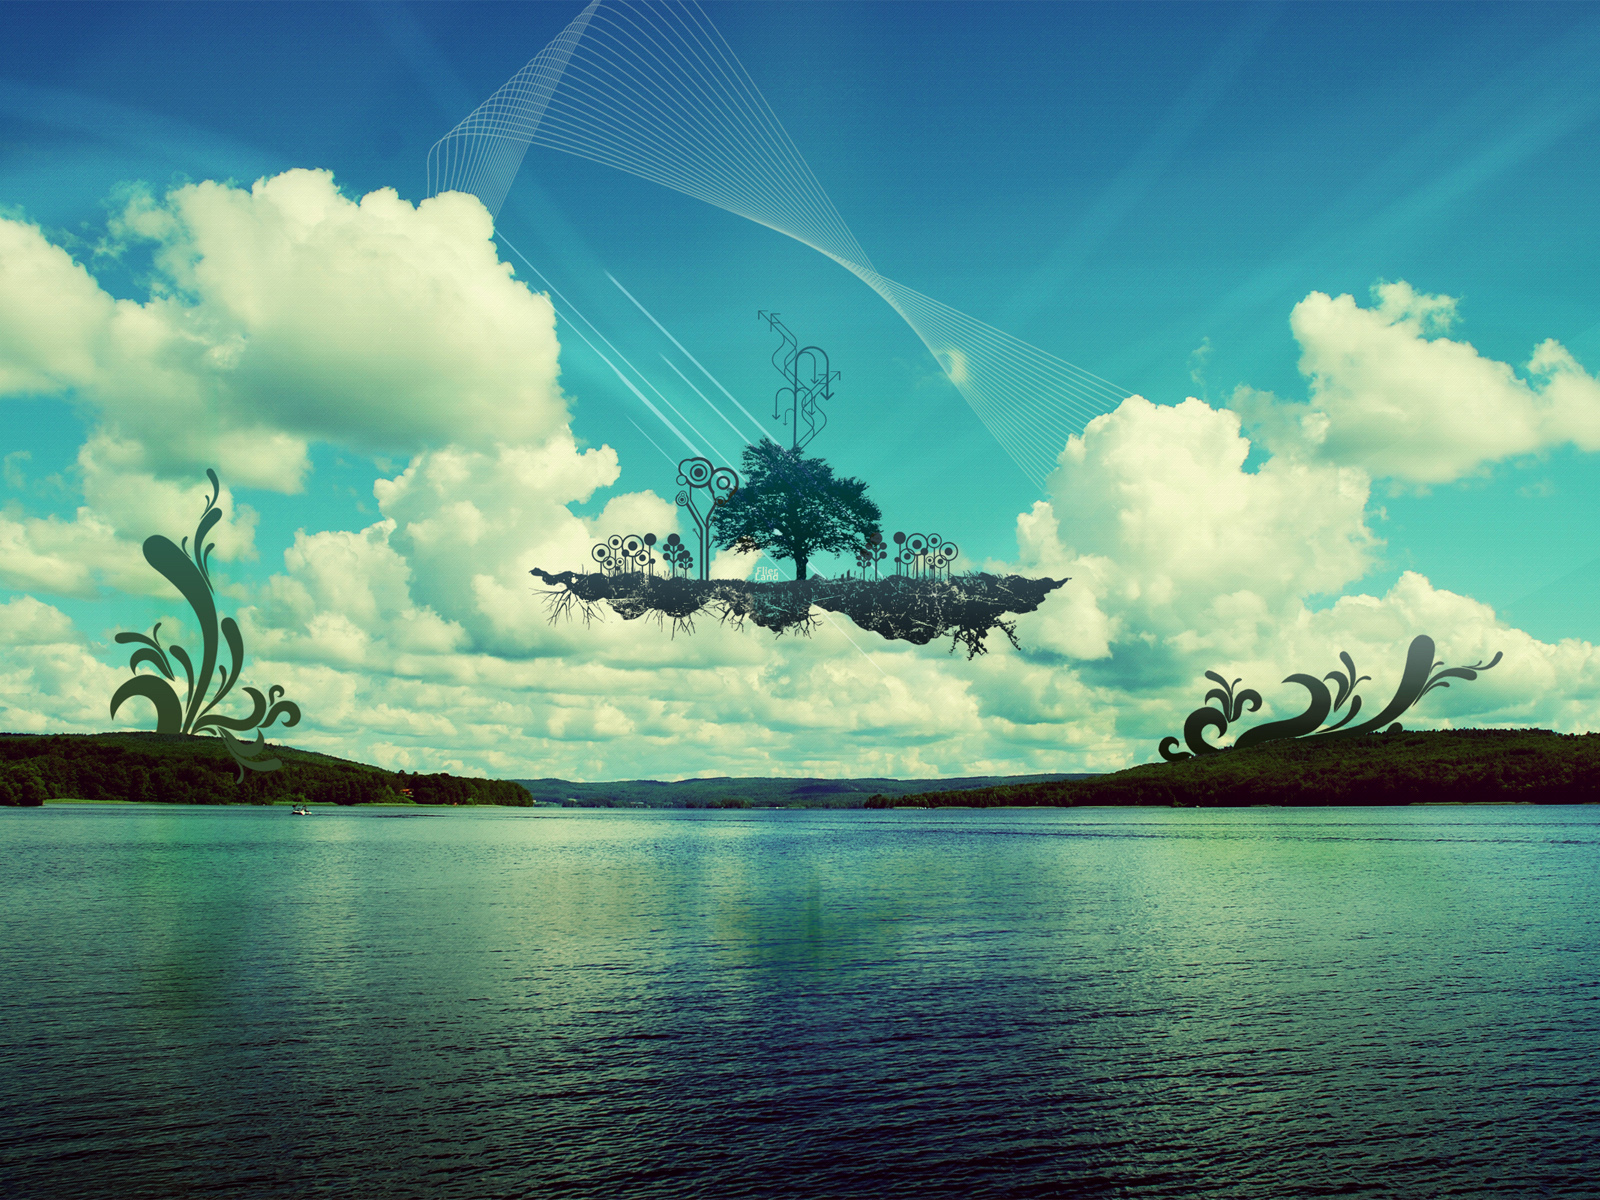 1600x1200 Floating island desktop PC and Mac wallpaper 1600x1200